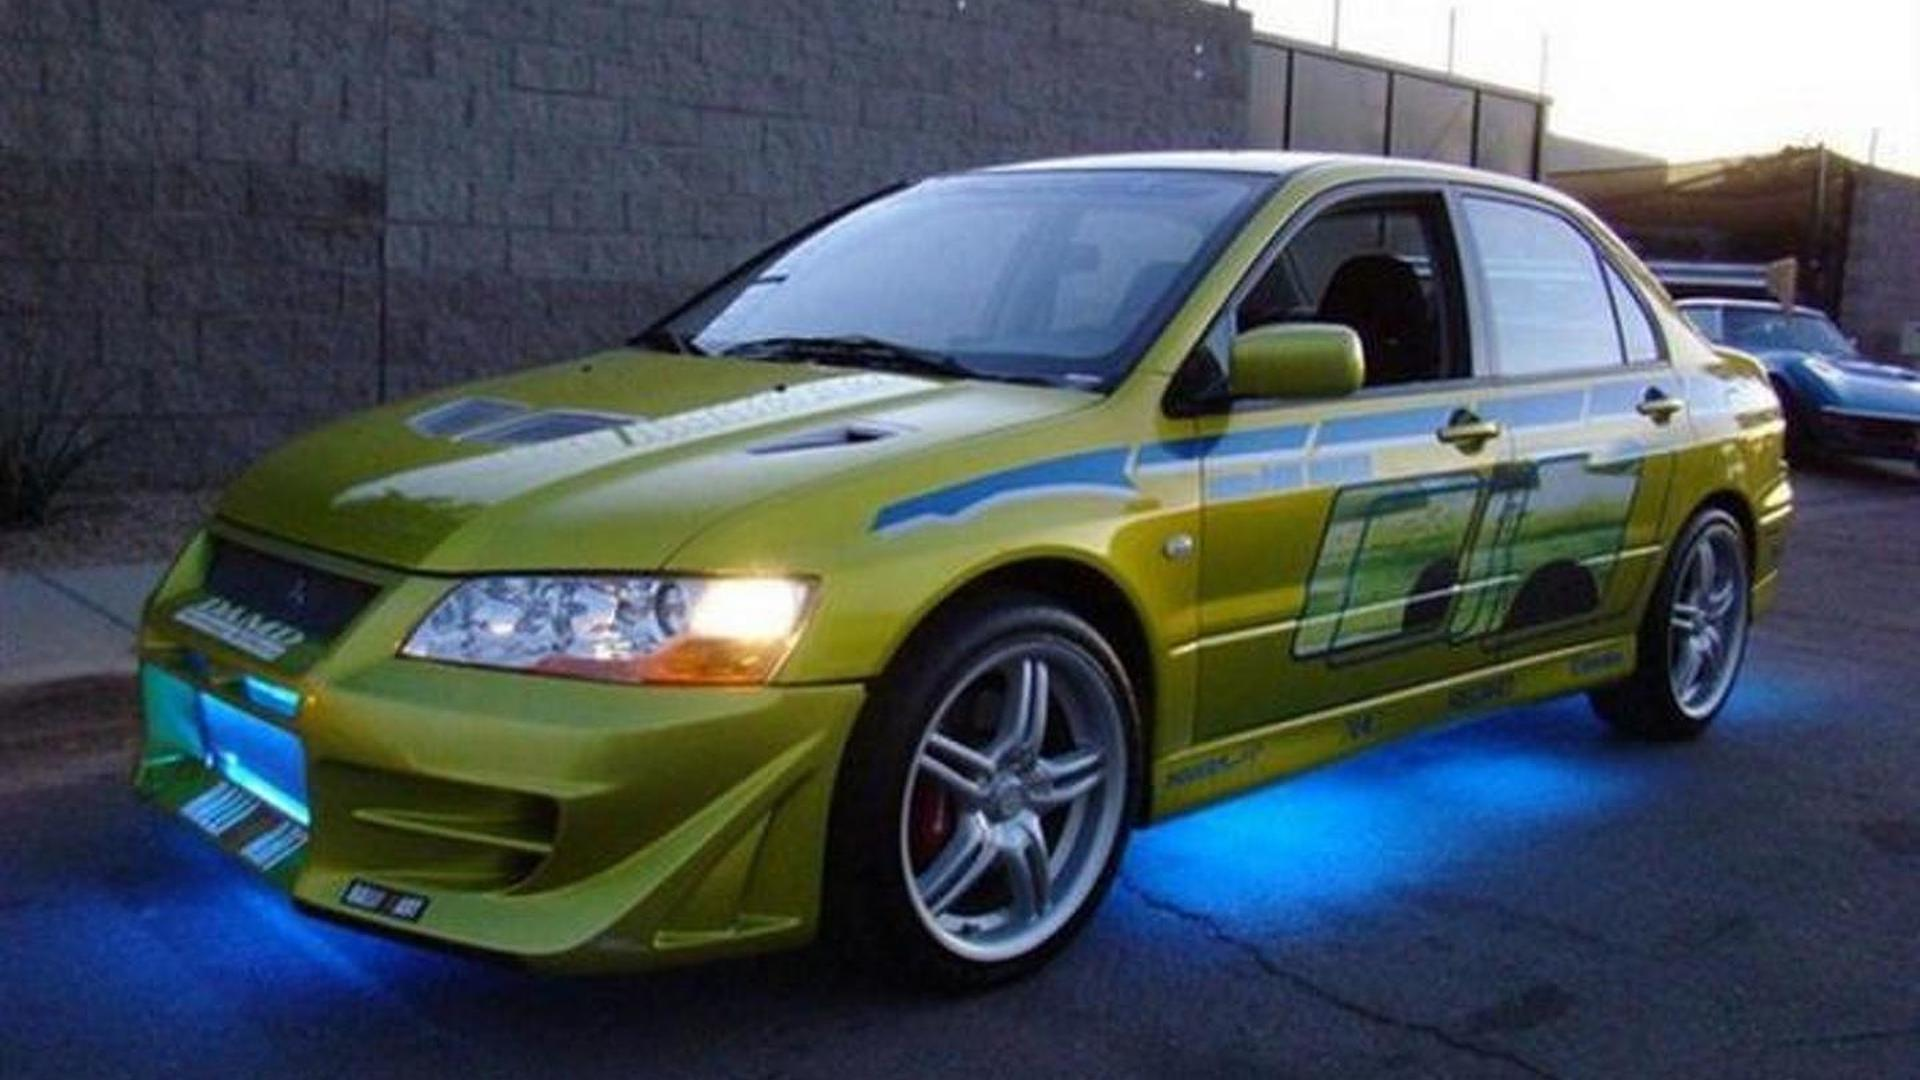 Paul Walkers Mitsubishi Evo From 2 Fast Furious Available On EBay